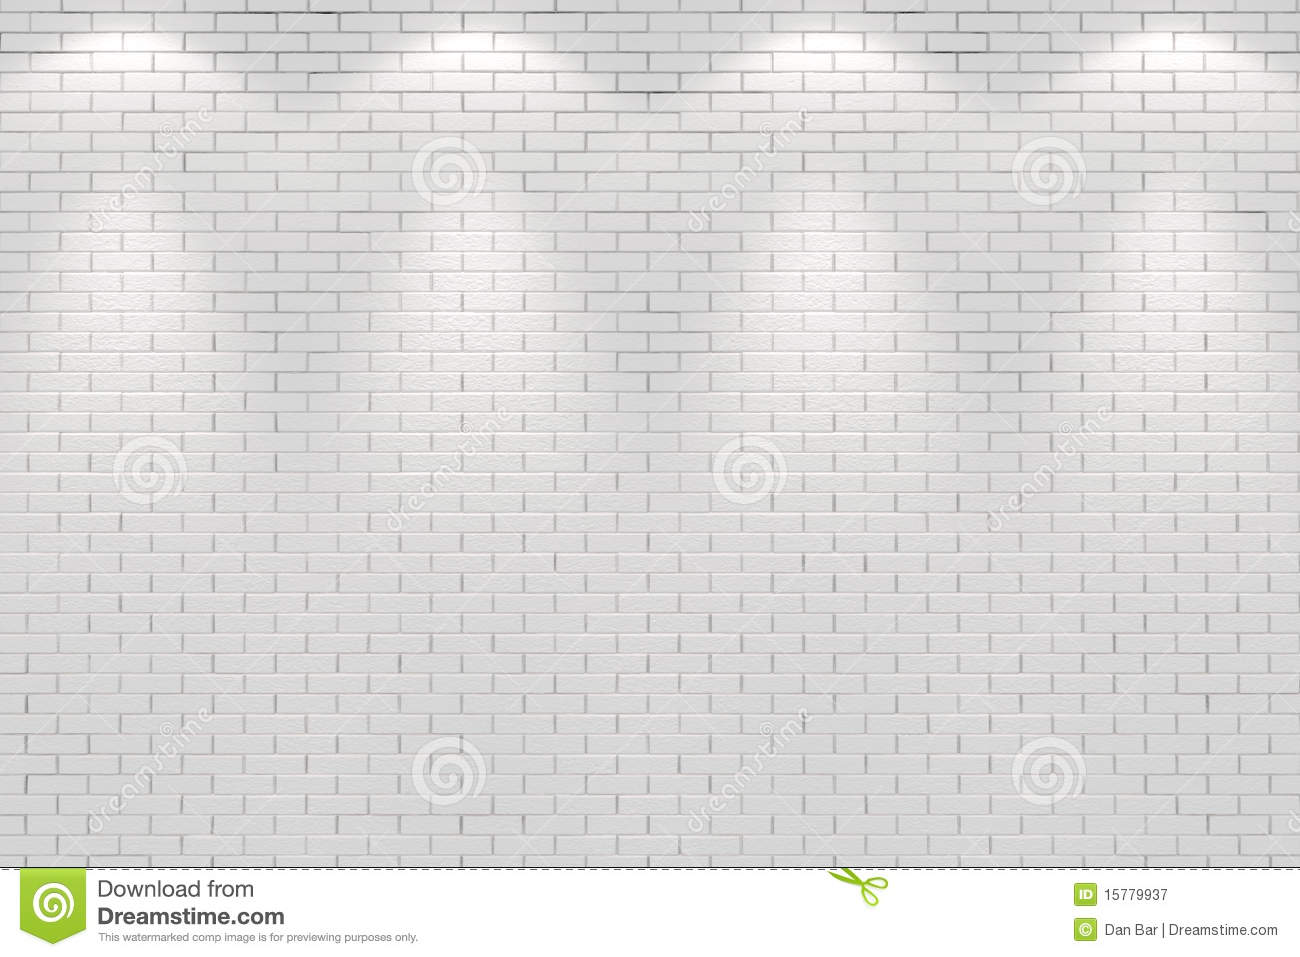 Brick Meubles Divan Lit Blank White Brick Wall Lit By Four Spot Lights Stock Illustration